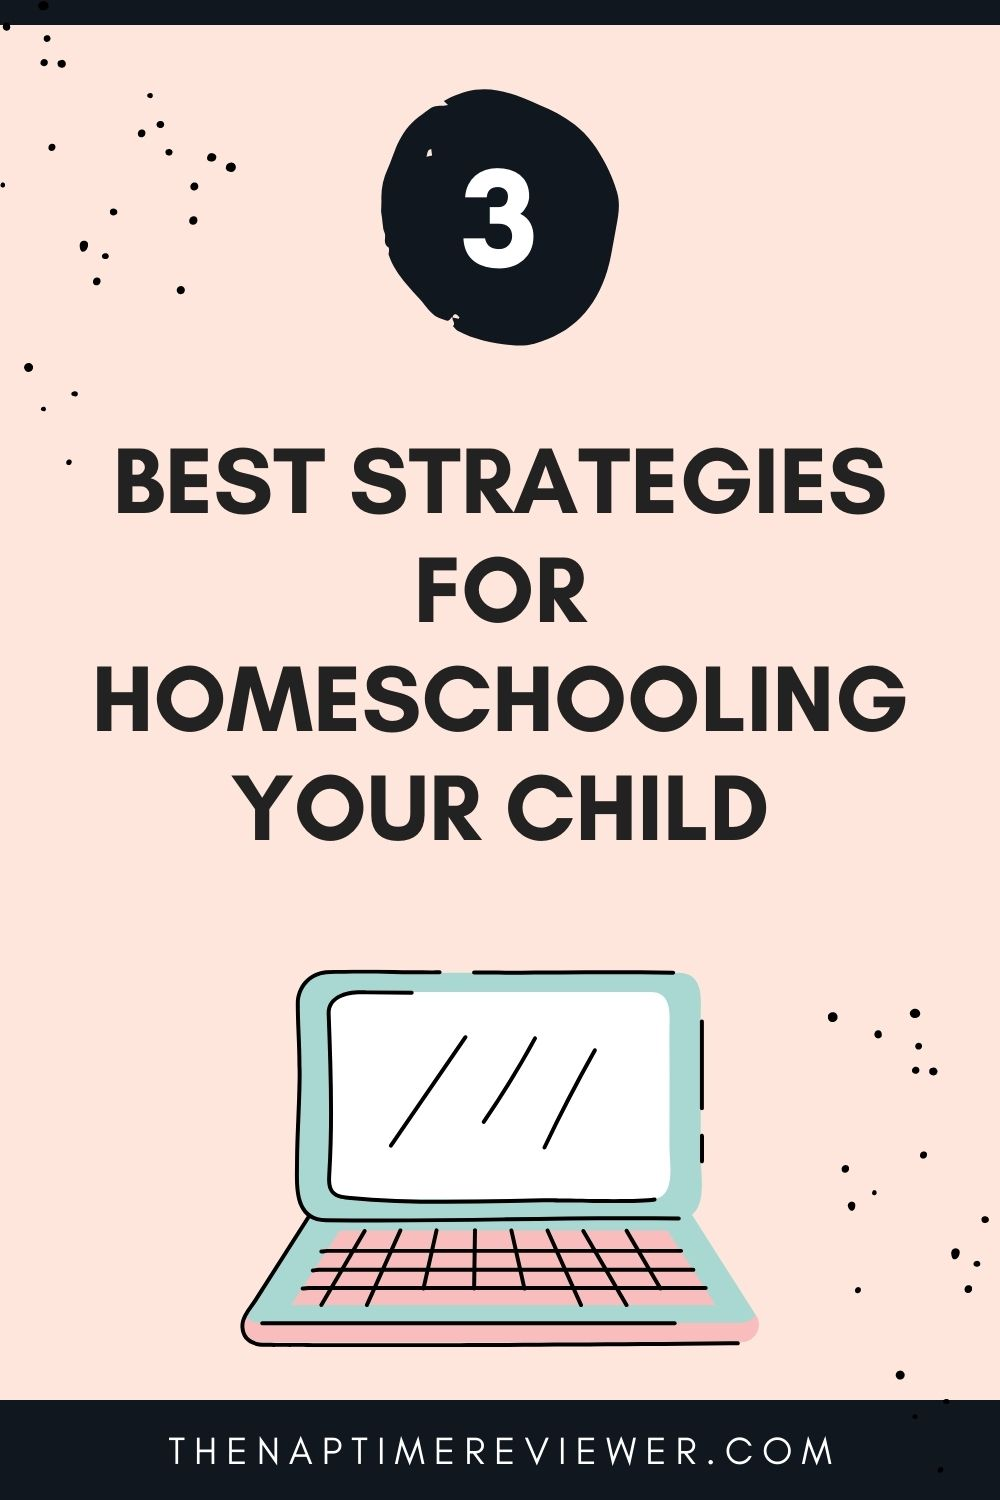 Best Strategies for Homeschooling Your Child